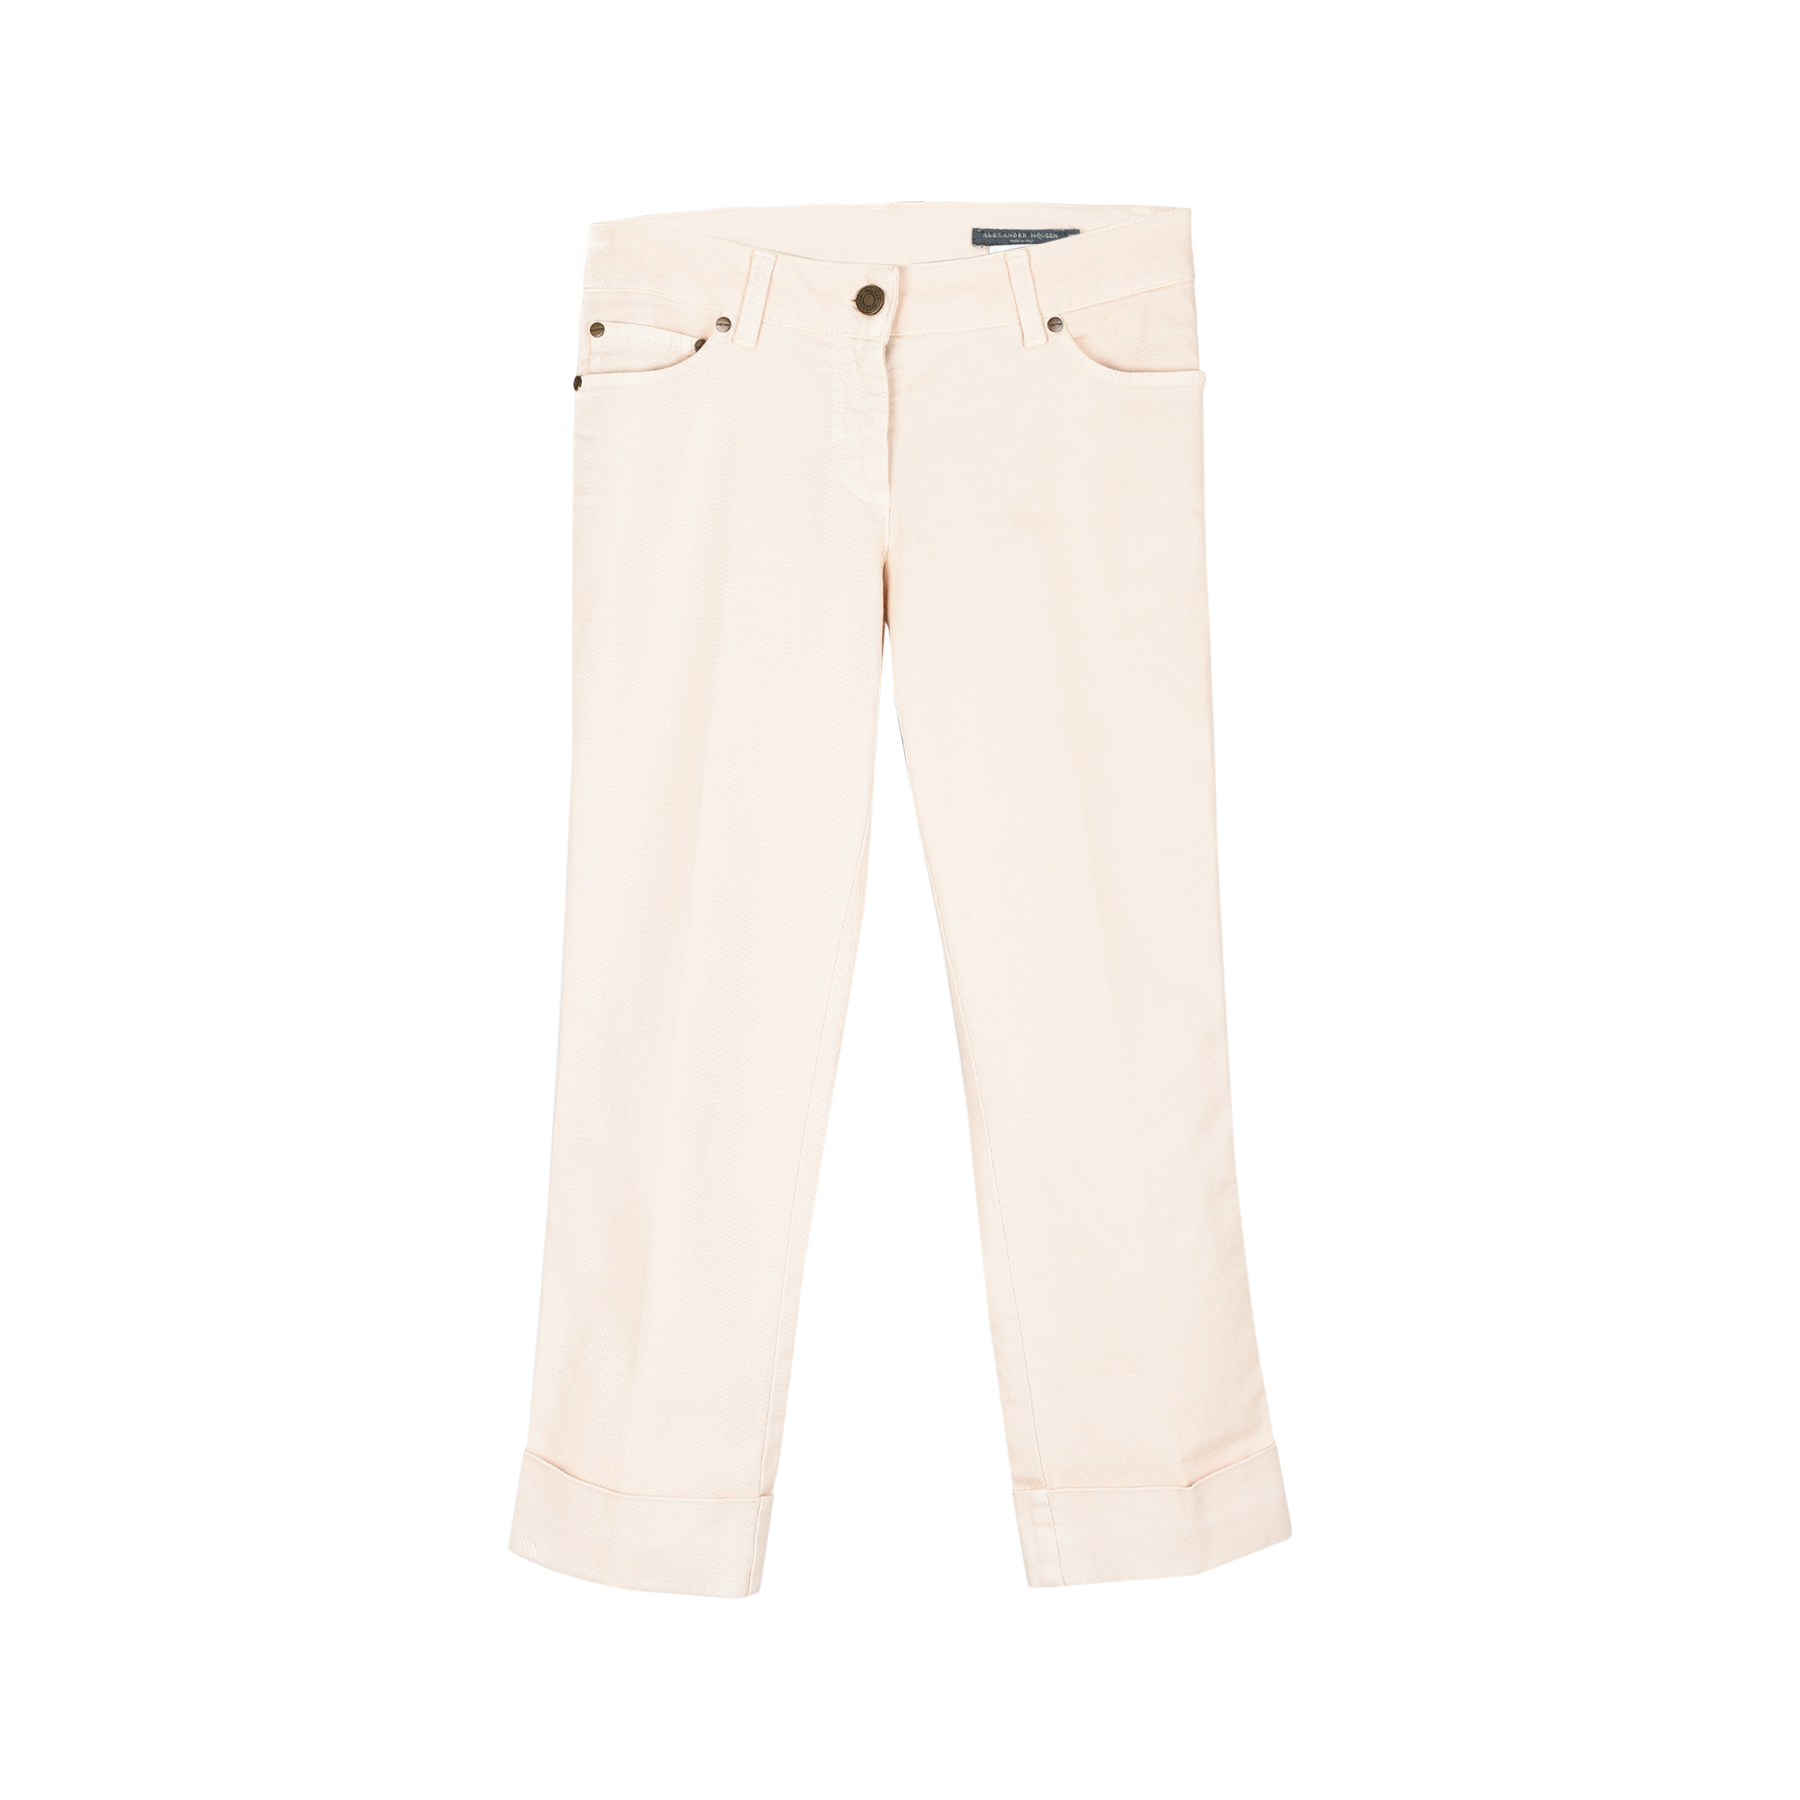 b05ce6fbbfe Authentic Second Hand Alexander McQueen Cropped Jeans (PSS-099-00013 ...